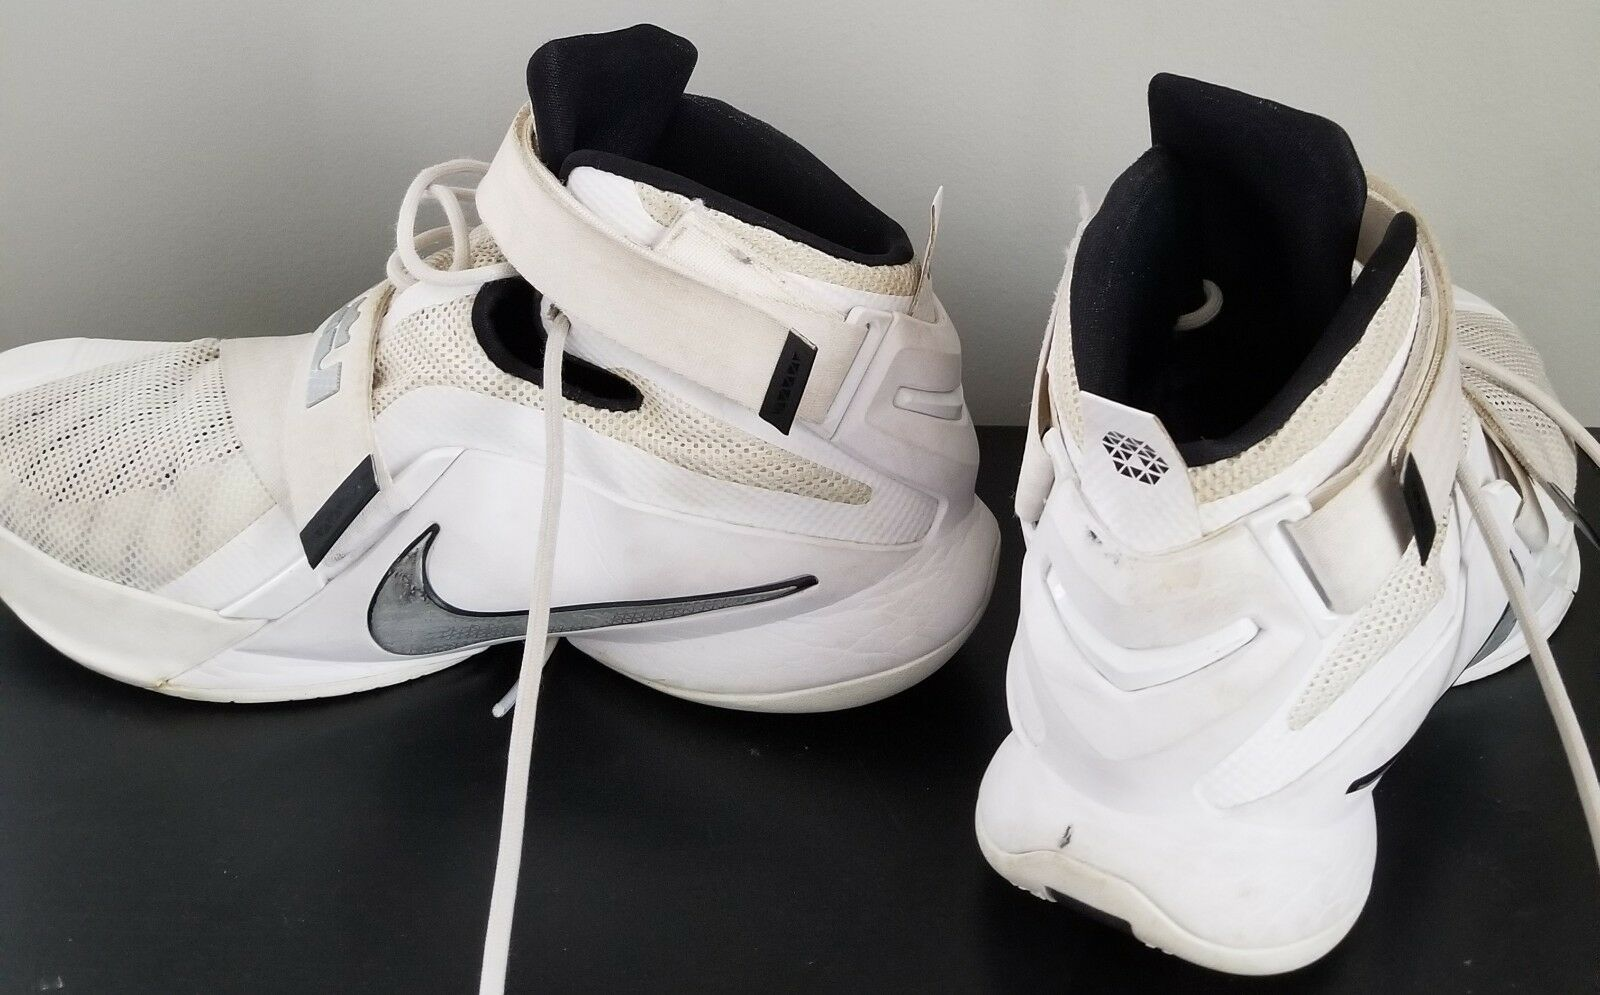 Nike Lebron Zoom Soldier IX 9 White Mens Basketball Shoes 749498-100 Size 14